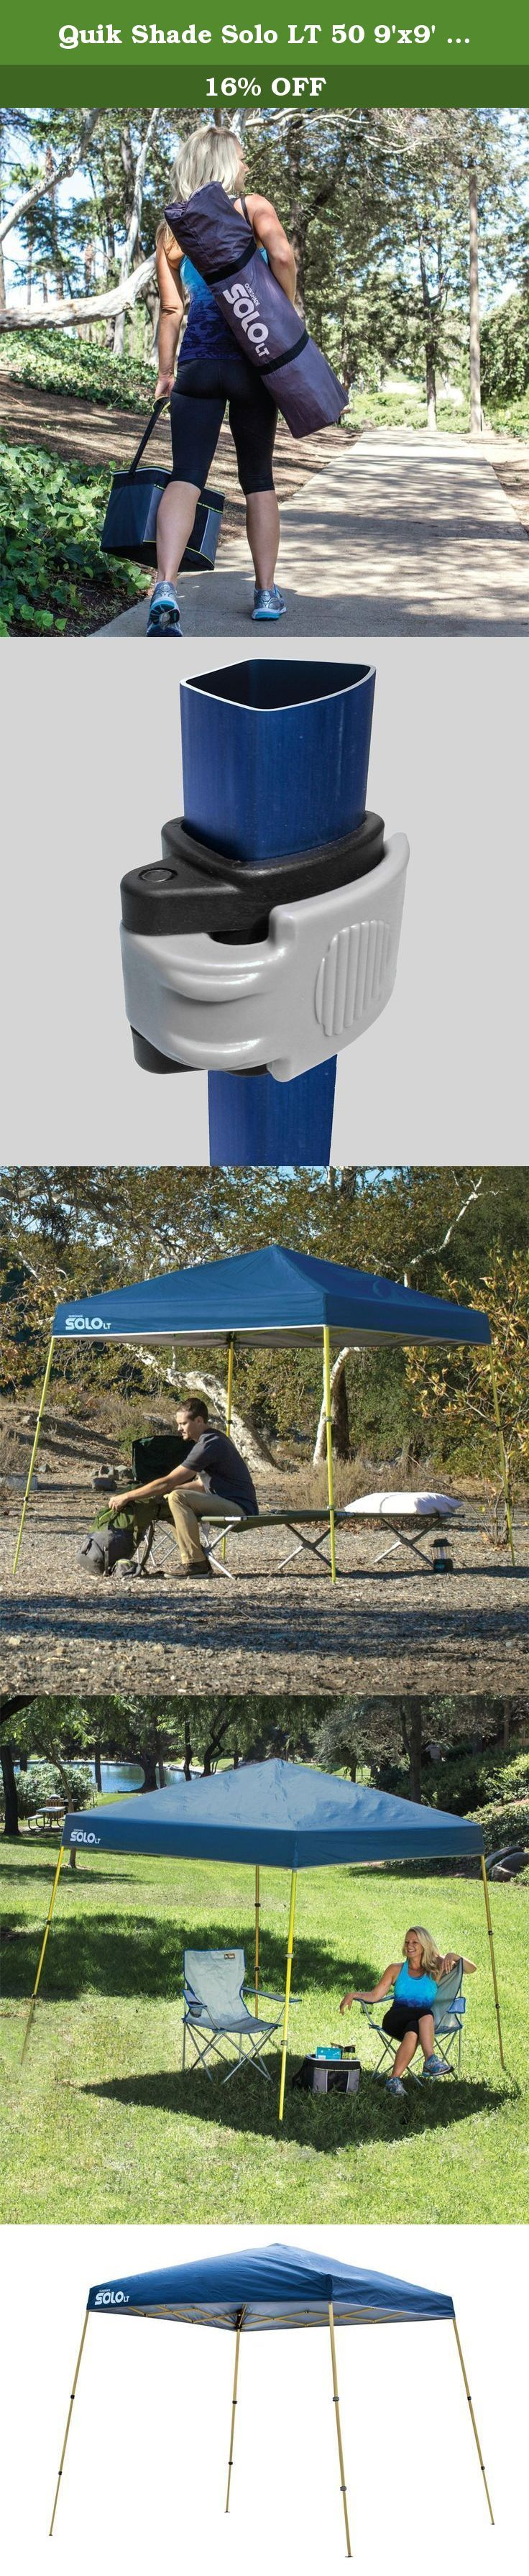 Quik Shade Solo LT 50 9'x9' Instant Canopy. Nothing beats the convenience and portability of the Quick Shade Solo LT 50 9-Foot x 9-Foot Instant Canopy, a lightweight recreational shelter that assembles in less than a minute. The UV-resistant top is Aluminex-backed, providing 99% UV protection from the sun's harmful rays. It's the highest outdoor fabric UV protection available! The slanted leg design provides additional stability, with cam lock levers and telescoping legs designed for ease…